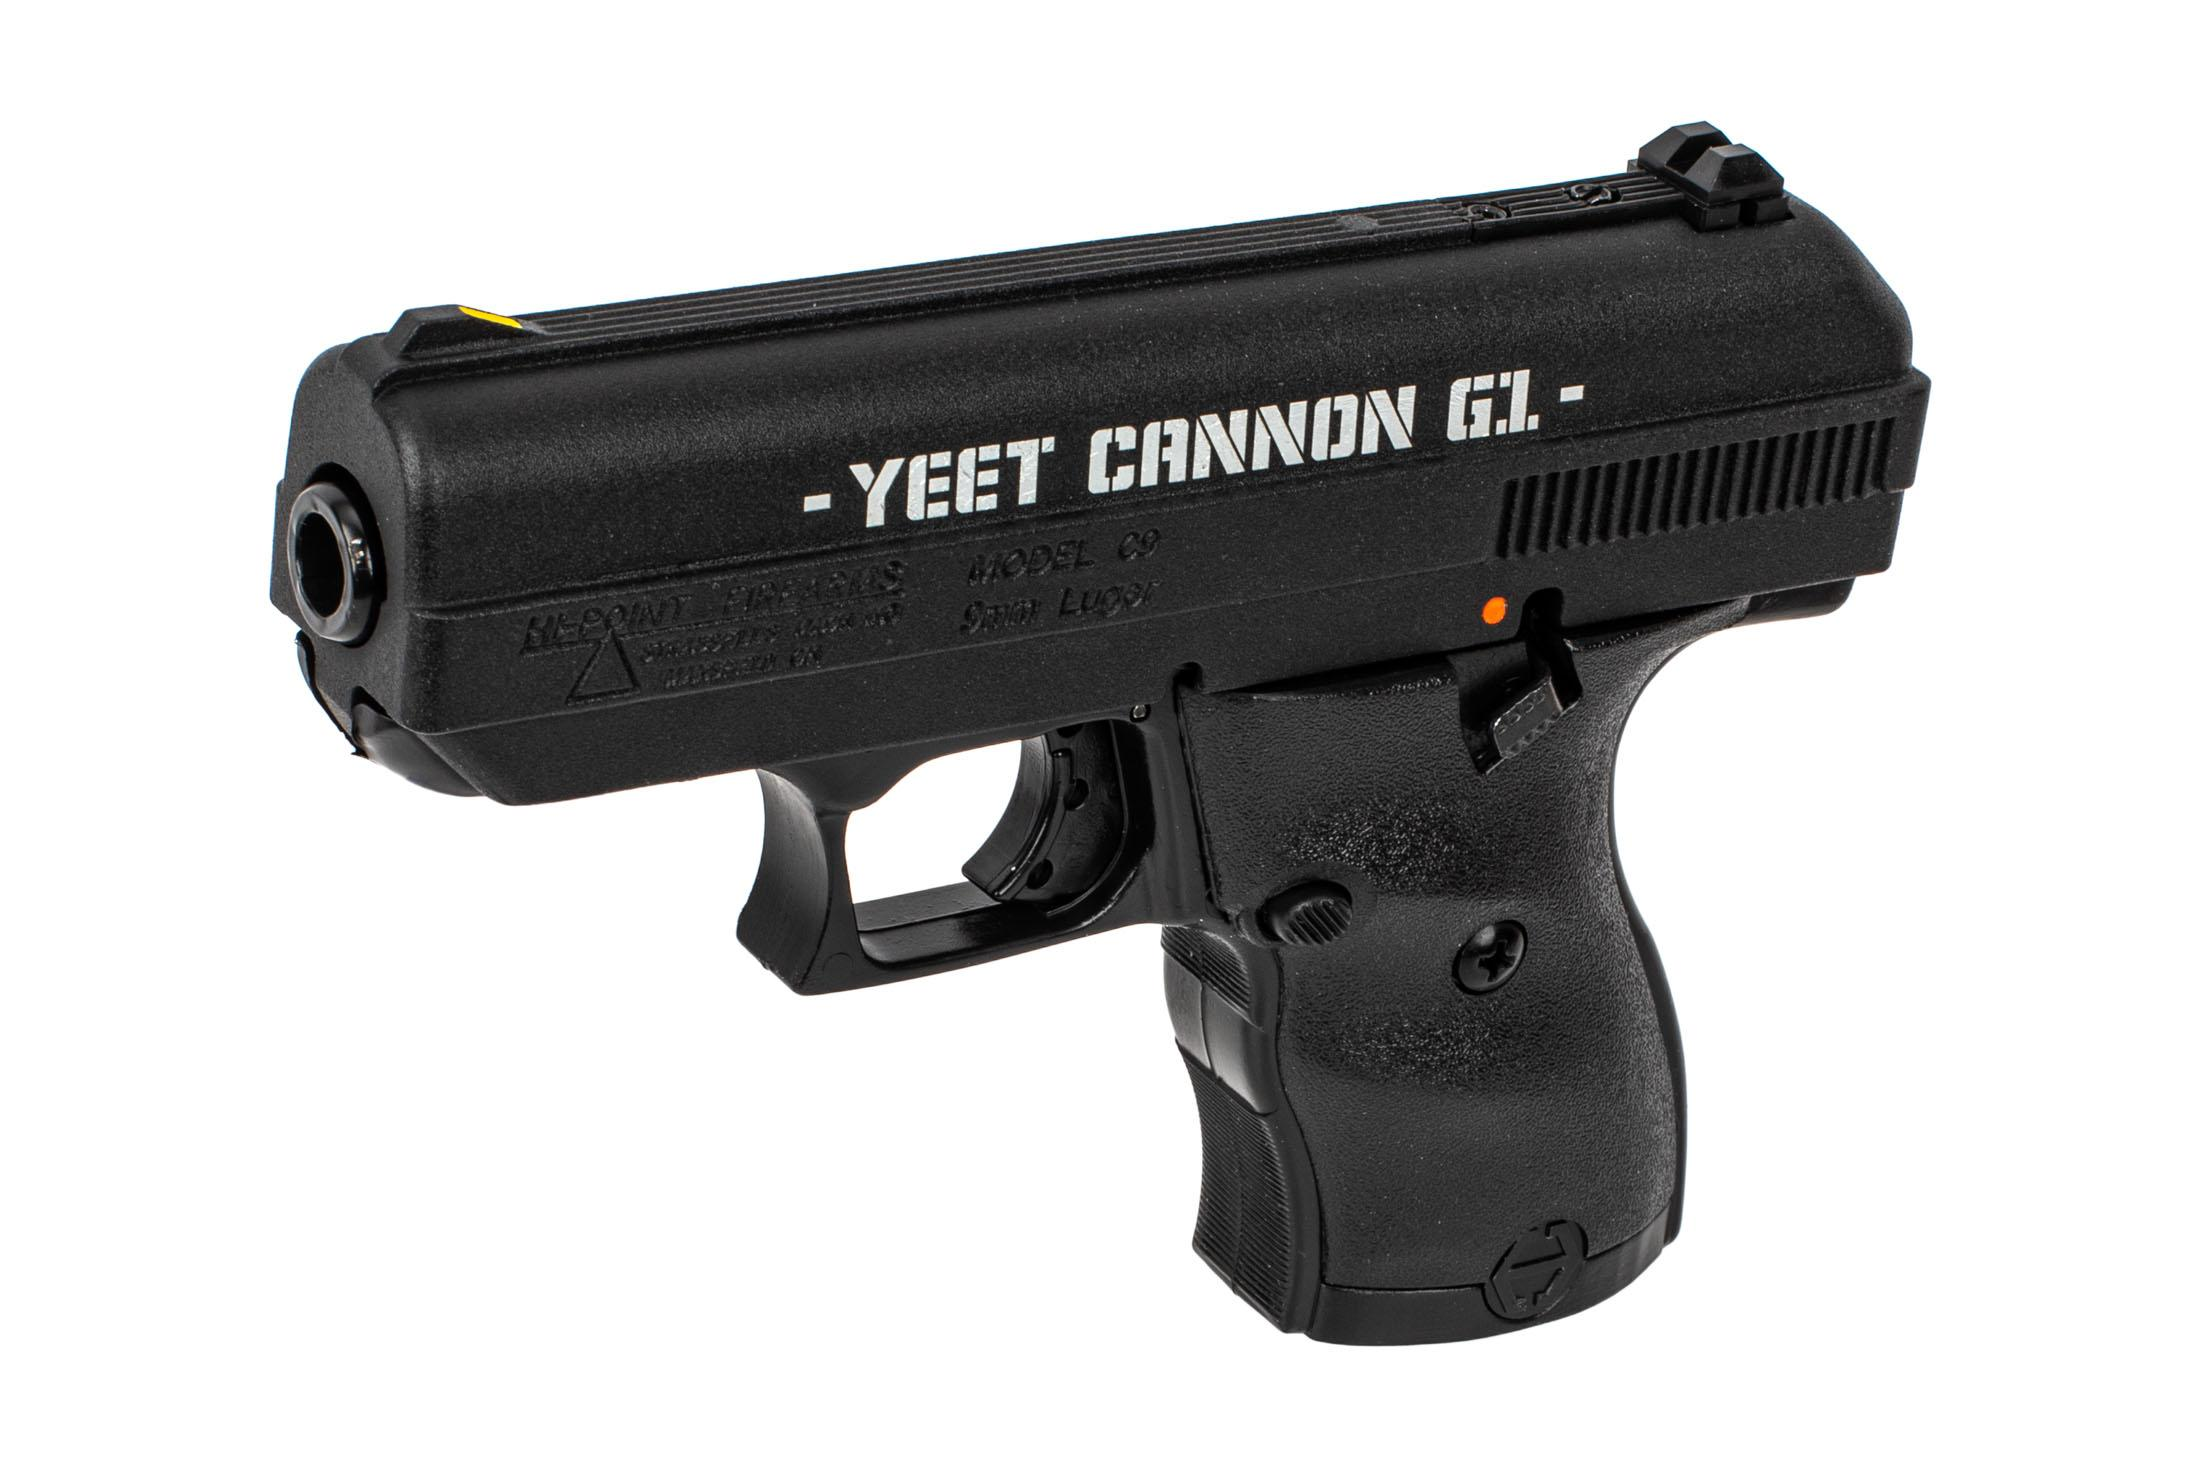 Hi-Point C9 YEET CANNON G1 9mm handgun with meme-tactular laser engraving on the slide.